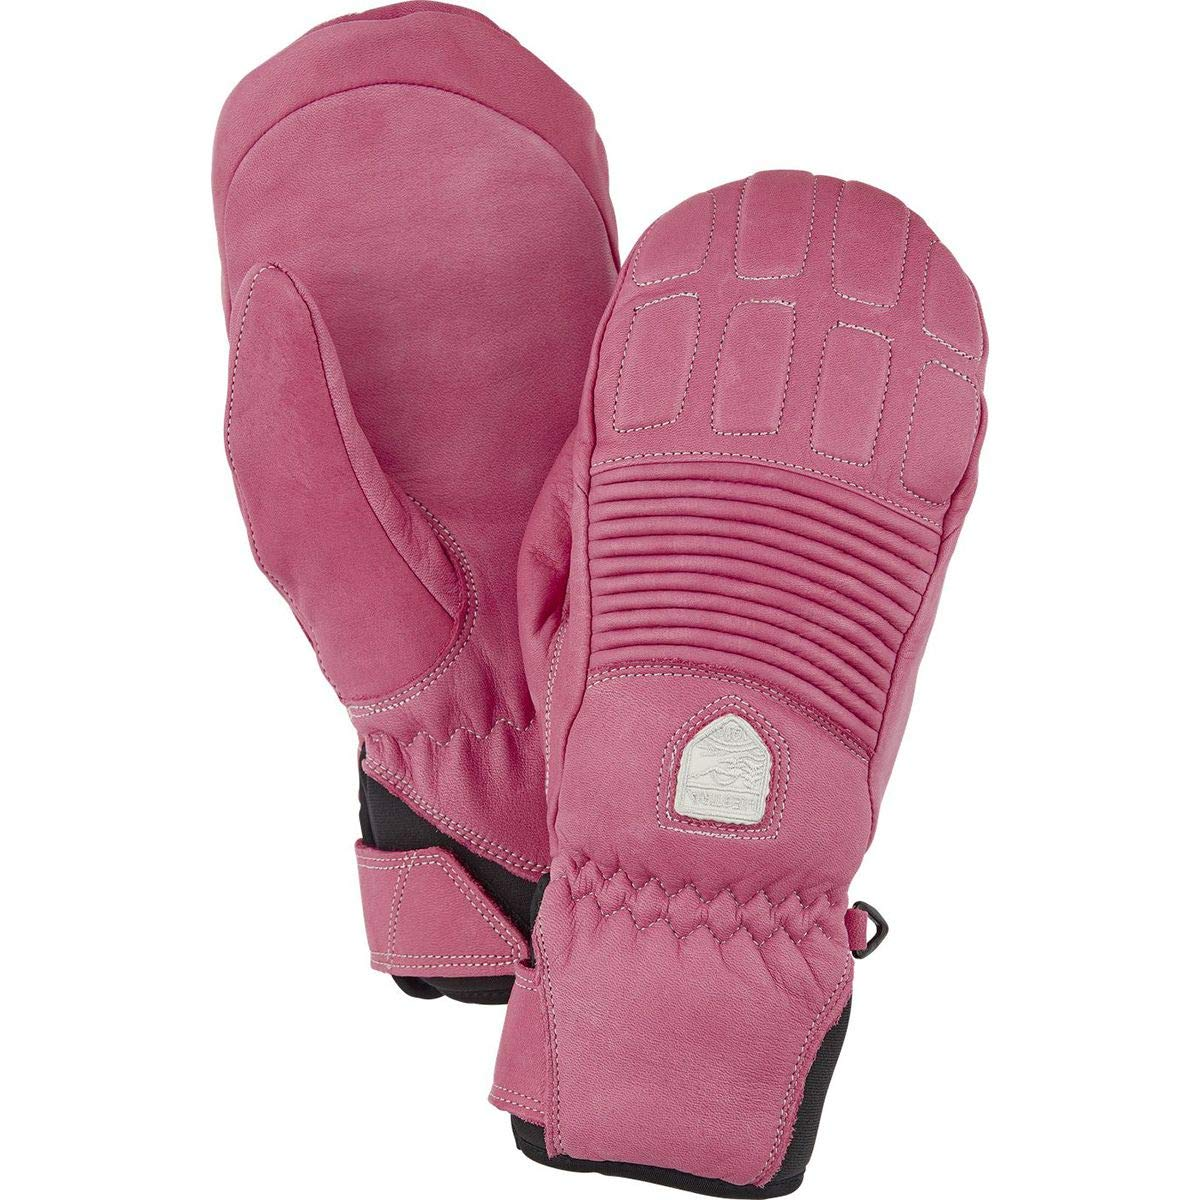 Hestra Leather Fall Line Mitten - Women's Cerise, 6 by Hestra (Image #2)